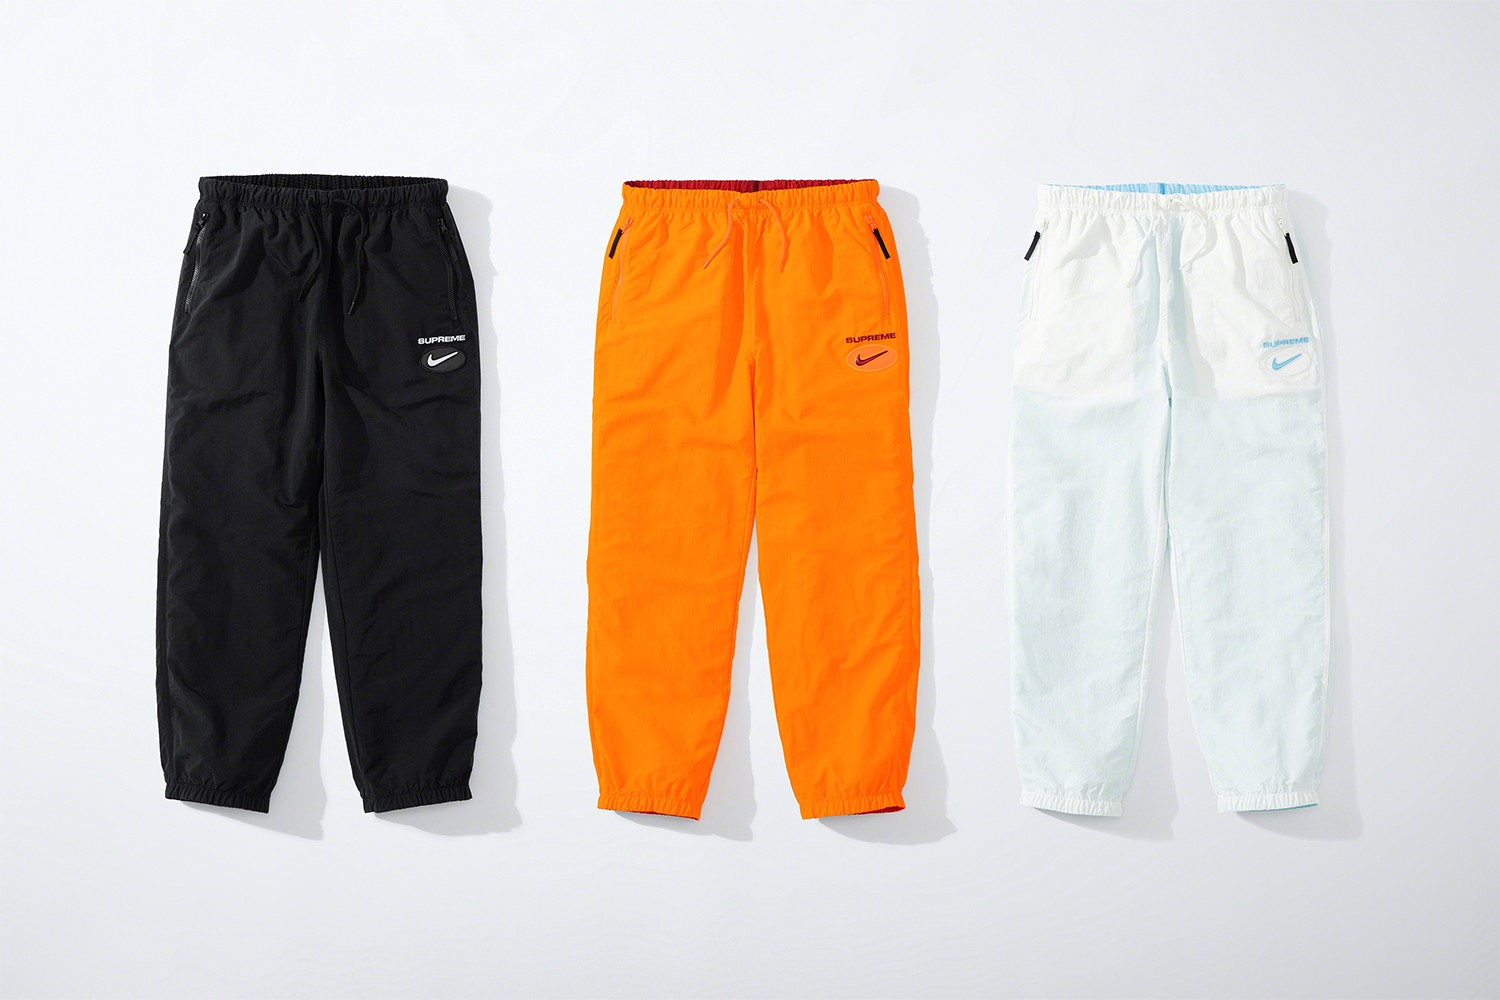 Nike Supreme Fall Winter 2020 Collection Release Info Date Buy Price Reversible Anorak Soccer Jersey Crewneck Reversible Pant Sweatshort.